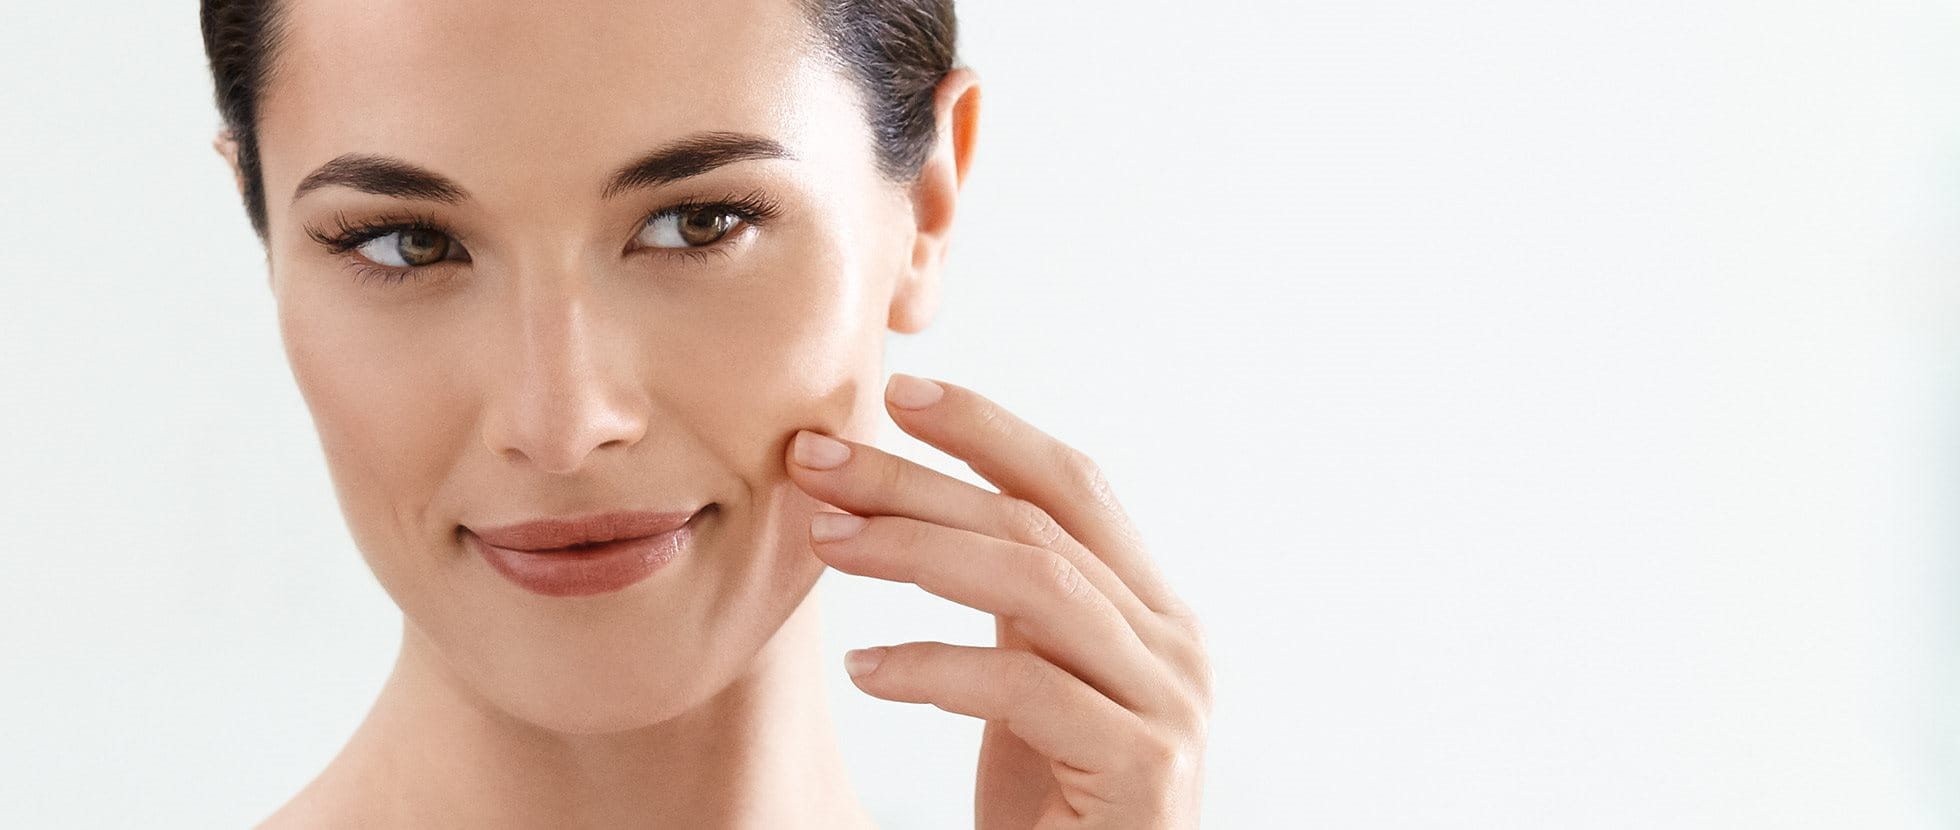 Wrinkles And Other Signs Of Ageing Skin Ageing Skin